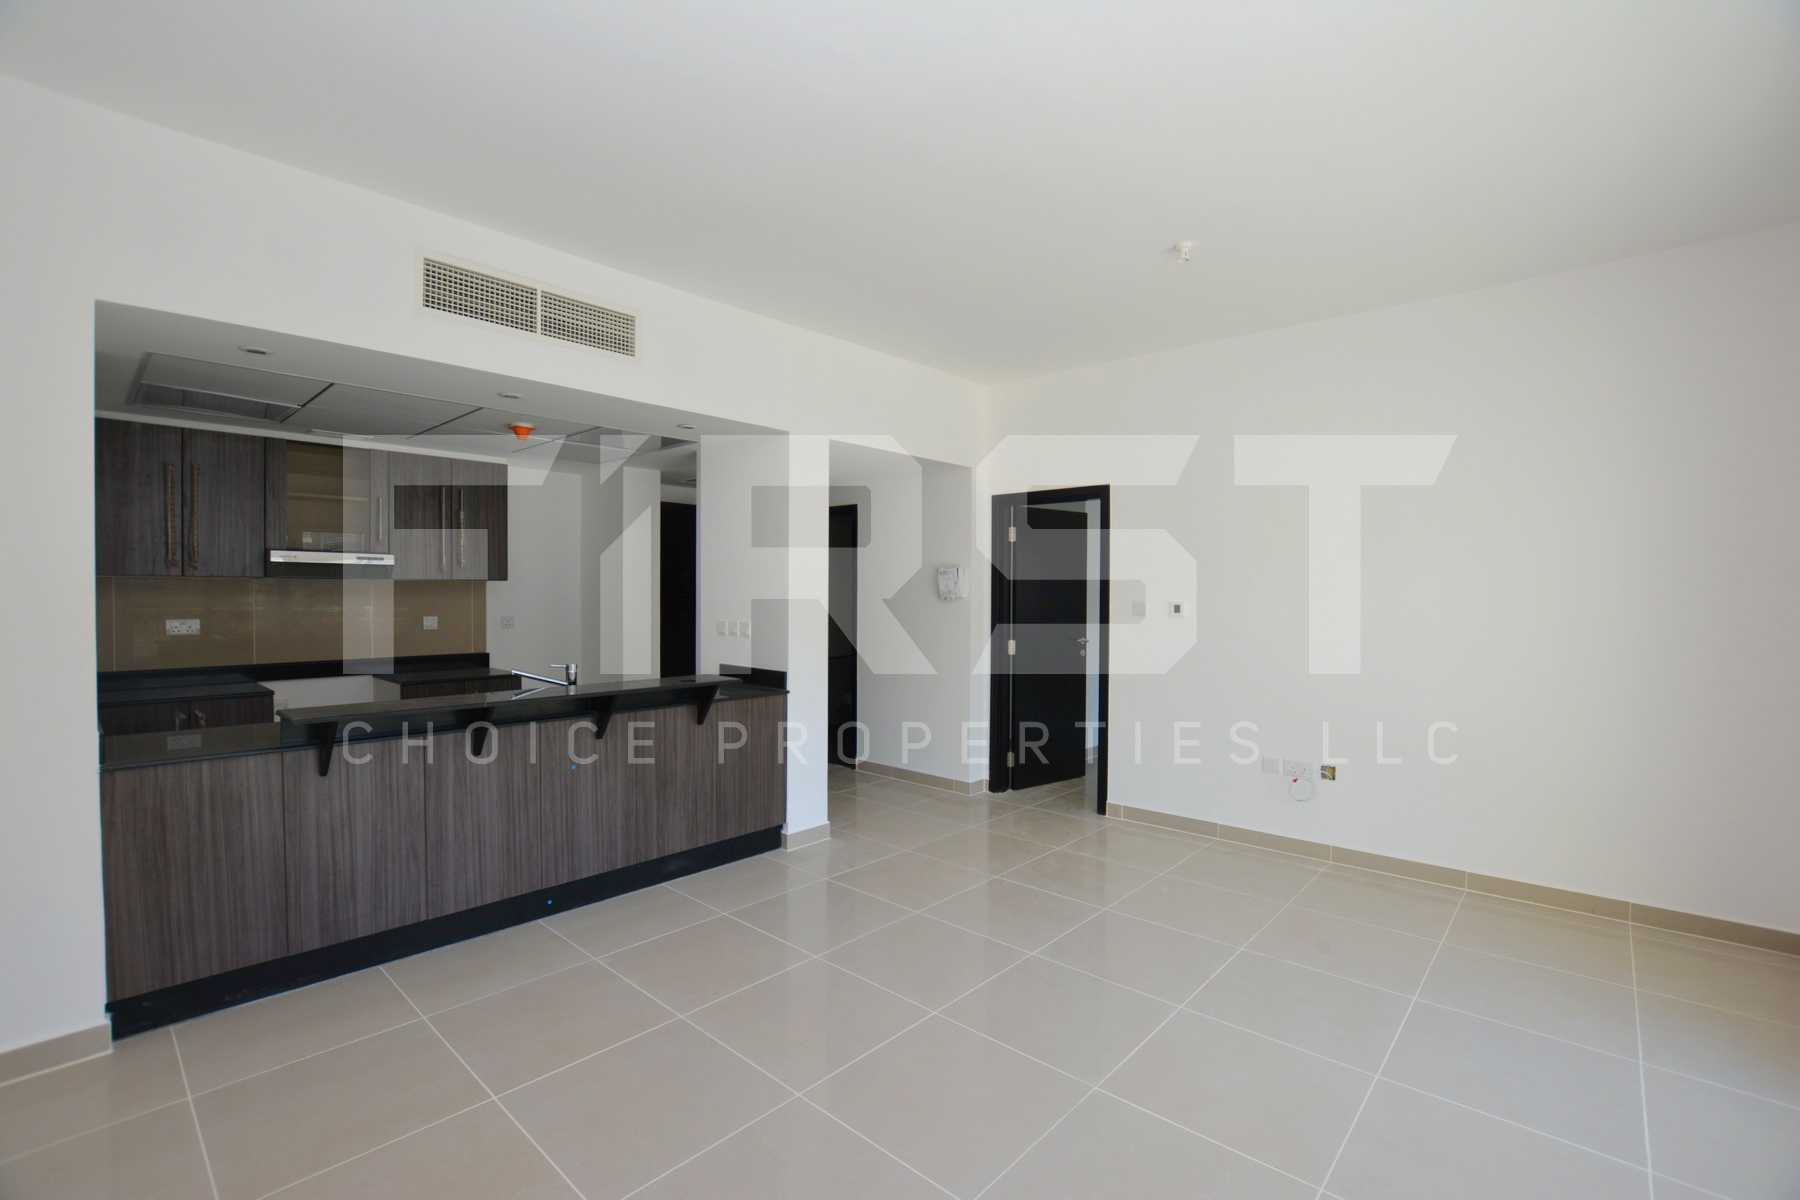 Internal Photo of 1 Bedroom Apartment Type A in Al Reef Downtown Al Reef Abu Dhabi UAE 74 sq.m 796 sq.ft (9).jpg